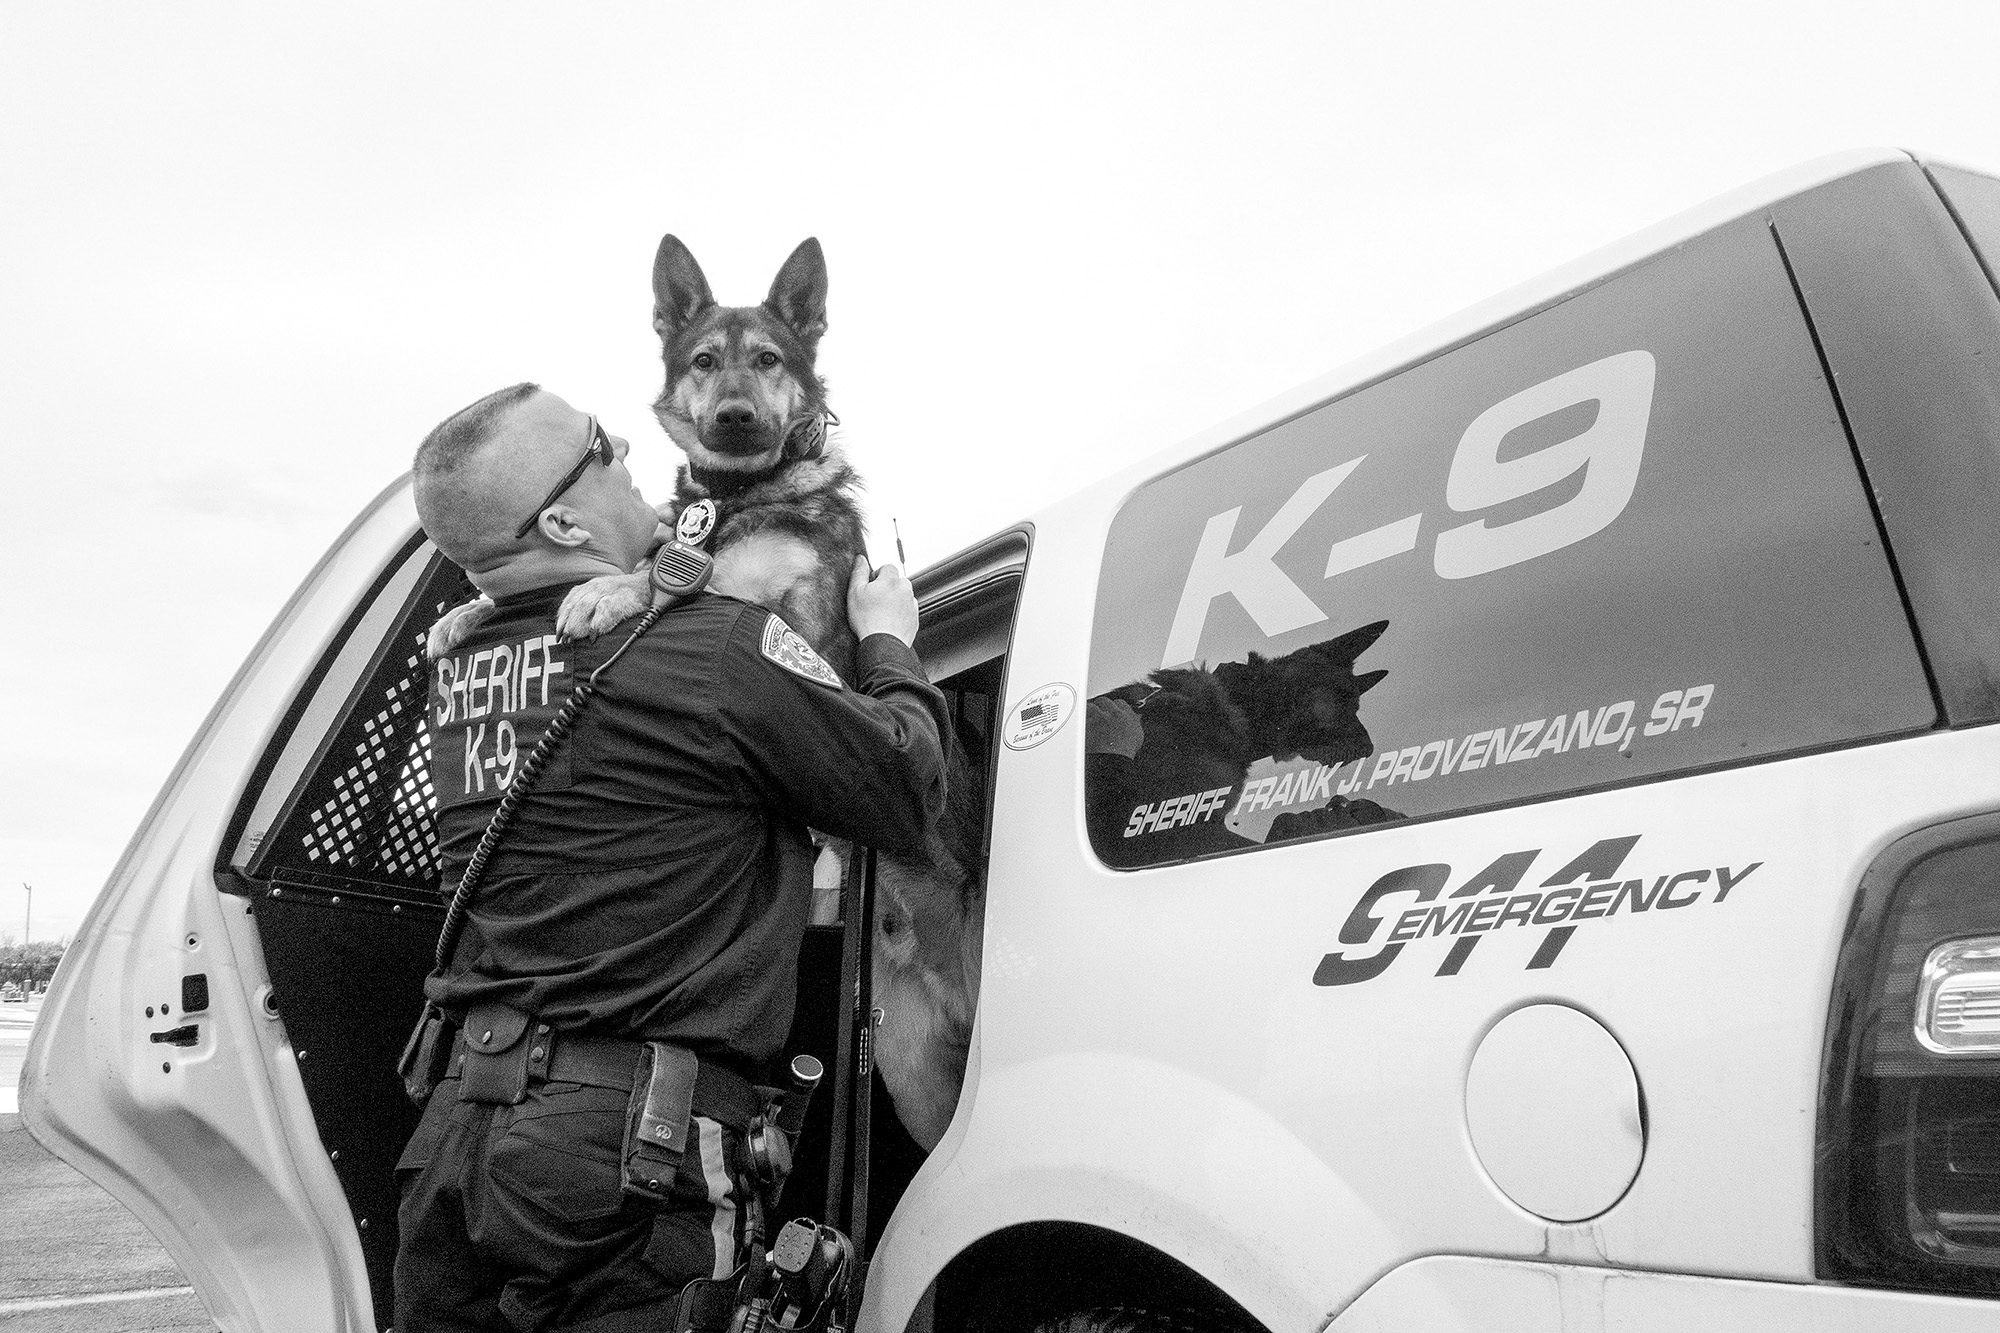 K-9 Photo Series, Canine, Police Dogs